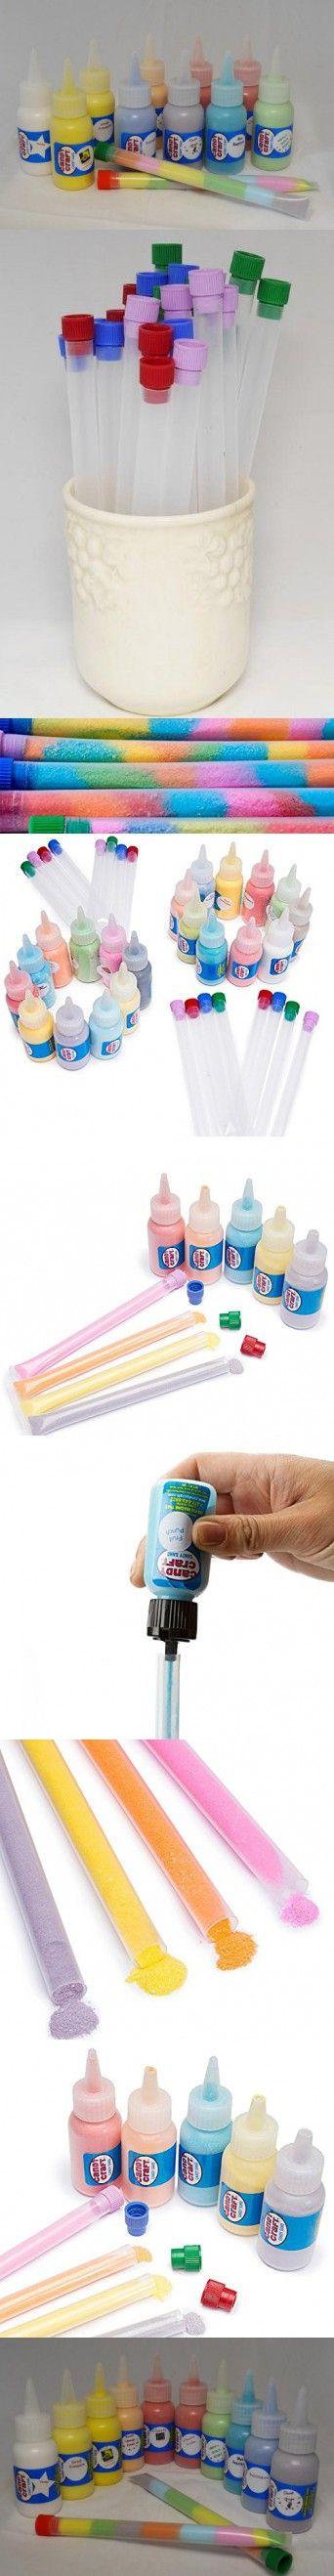 Sandy Candy Test Tube Party Kit - Sand Candy Art For Kids Birthday Party Activities, Games & Party Favors - 10 Flavor Sand Candy Kit - 10 Bottles With 25, 6 Inch Test Tubes